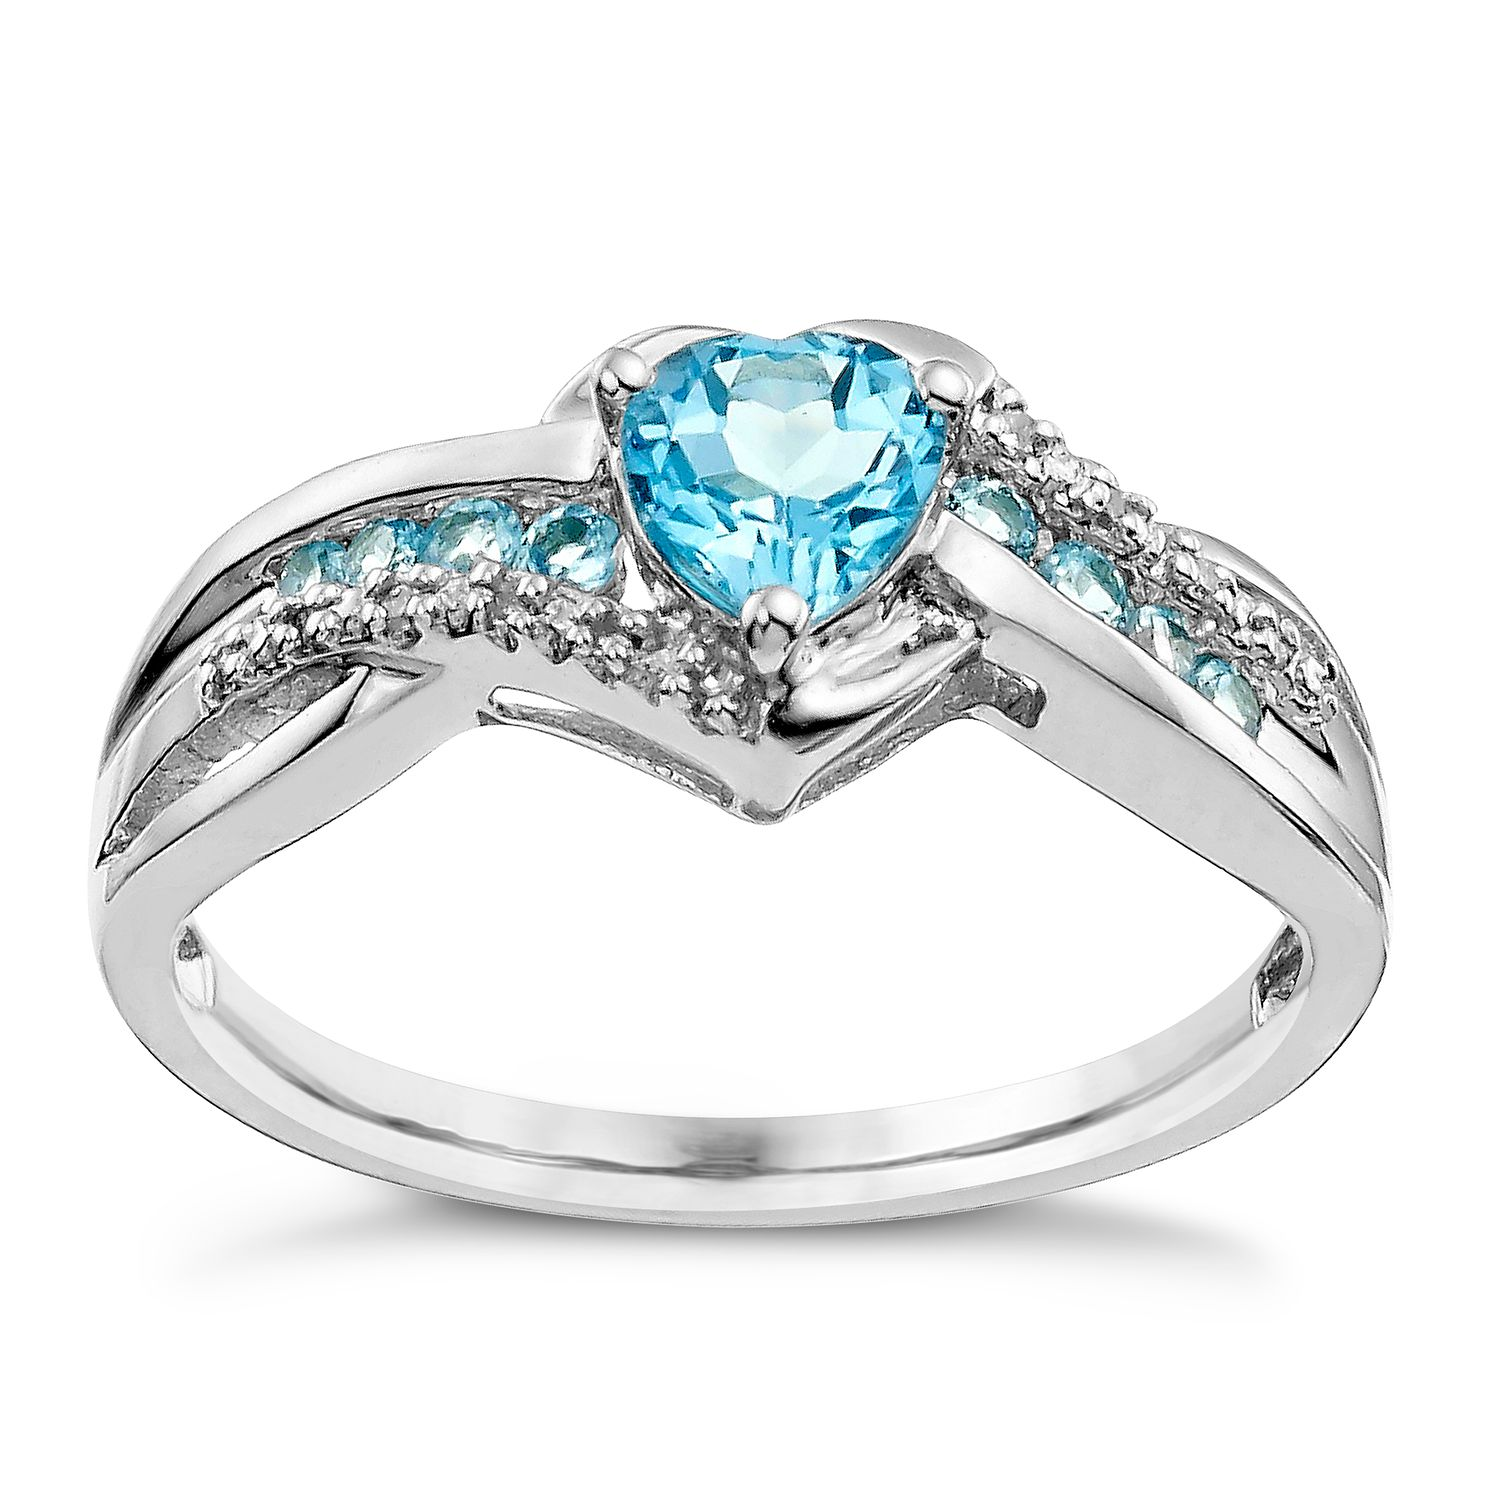 rings london fullxfull an ring engagement topaz matching gold with set white band il products blue oxow unique diamond